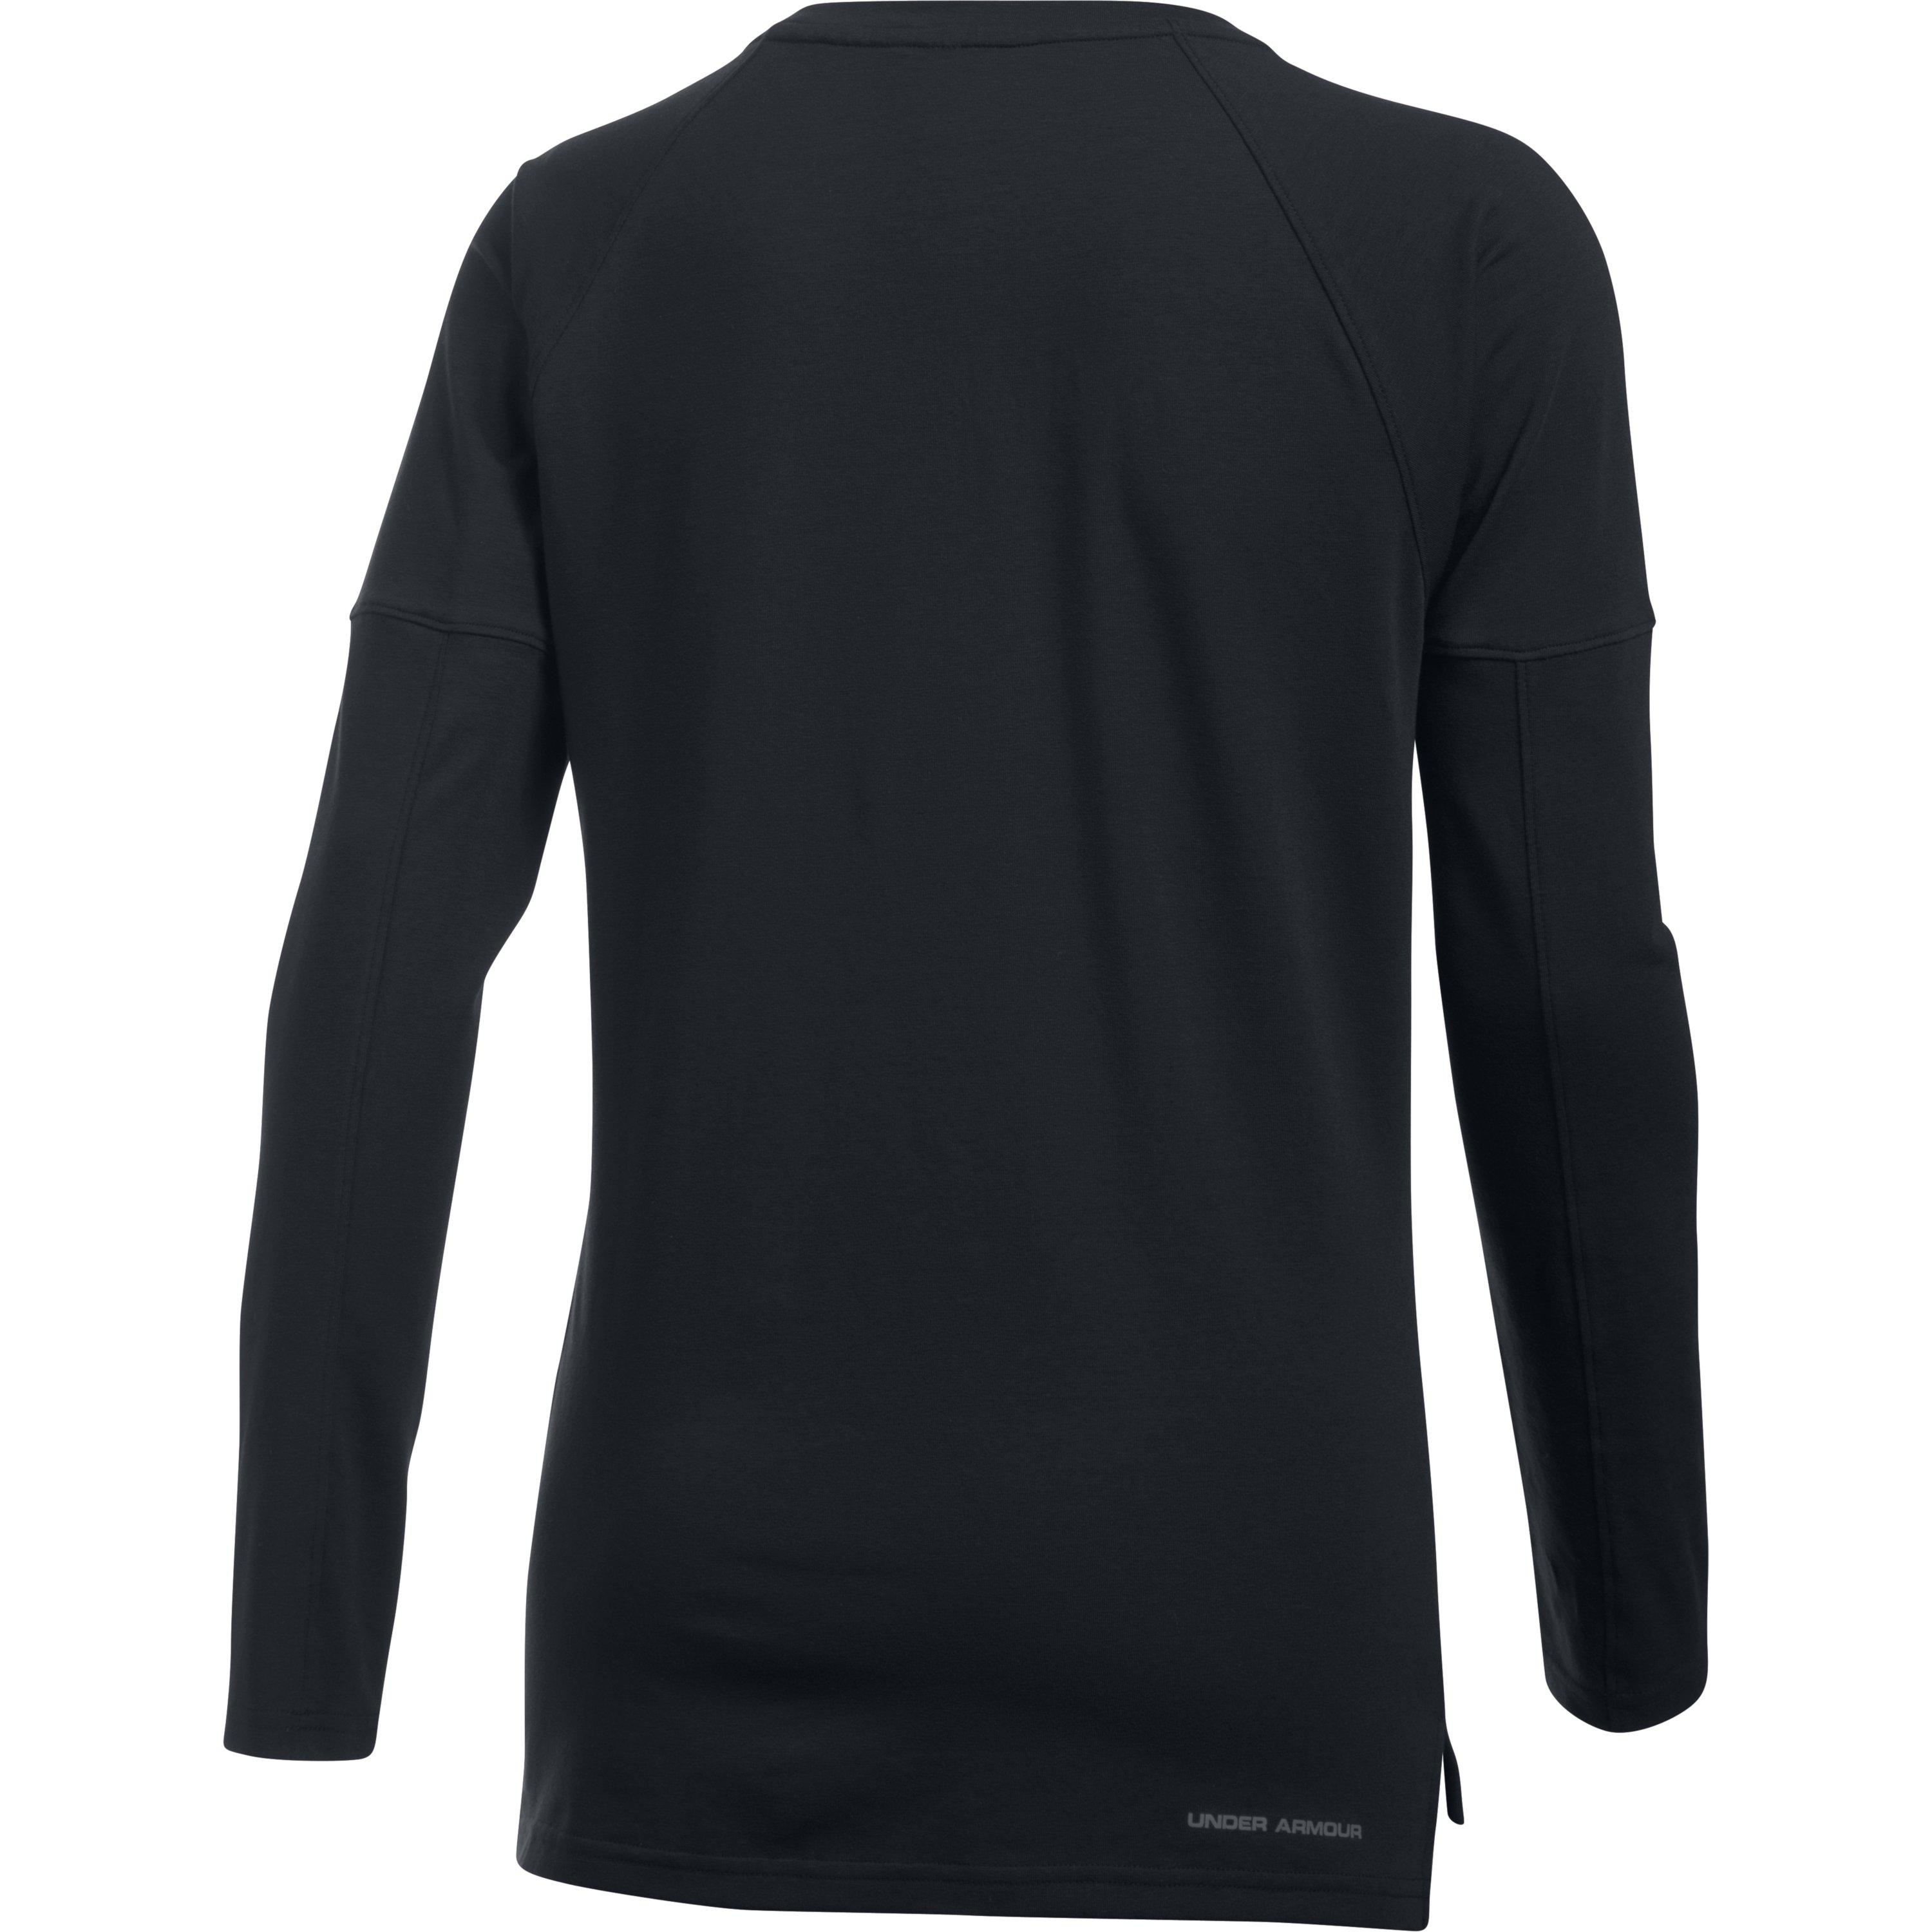 wholesale dealer 997f7 b51d5 ... Lyst - Under Armour Women s Ua Rest Day Long Sleeve in Black ...